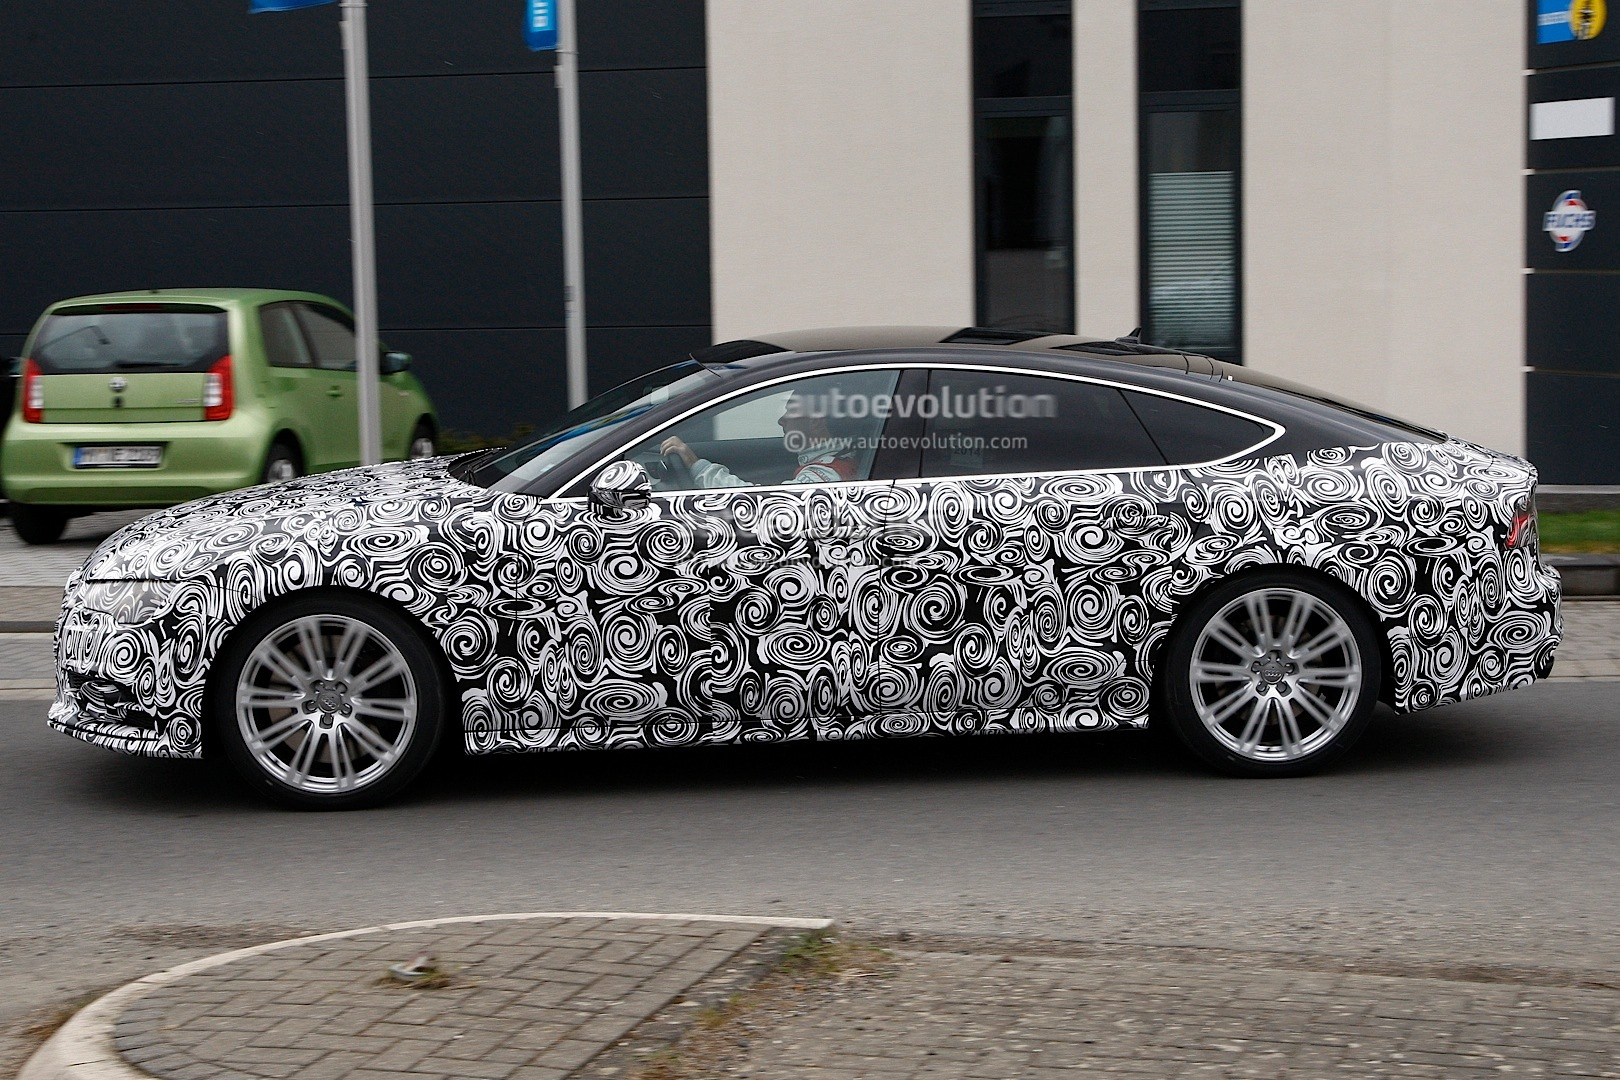 2014 - [Audi] A7 & S7 Sportback Restylée - Page 3 Spyshots-2015-audi-s7-facelift-has-a-new-grille-and-headlights_3